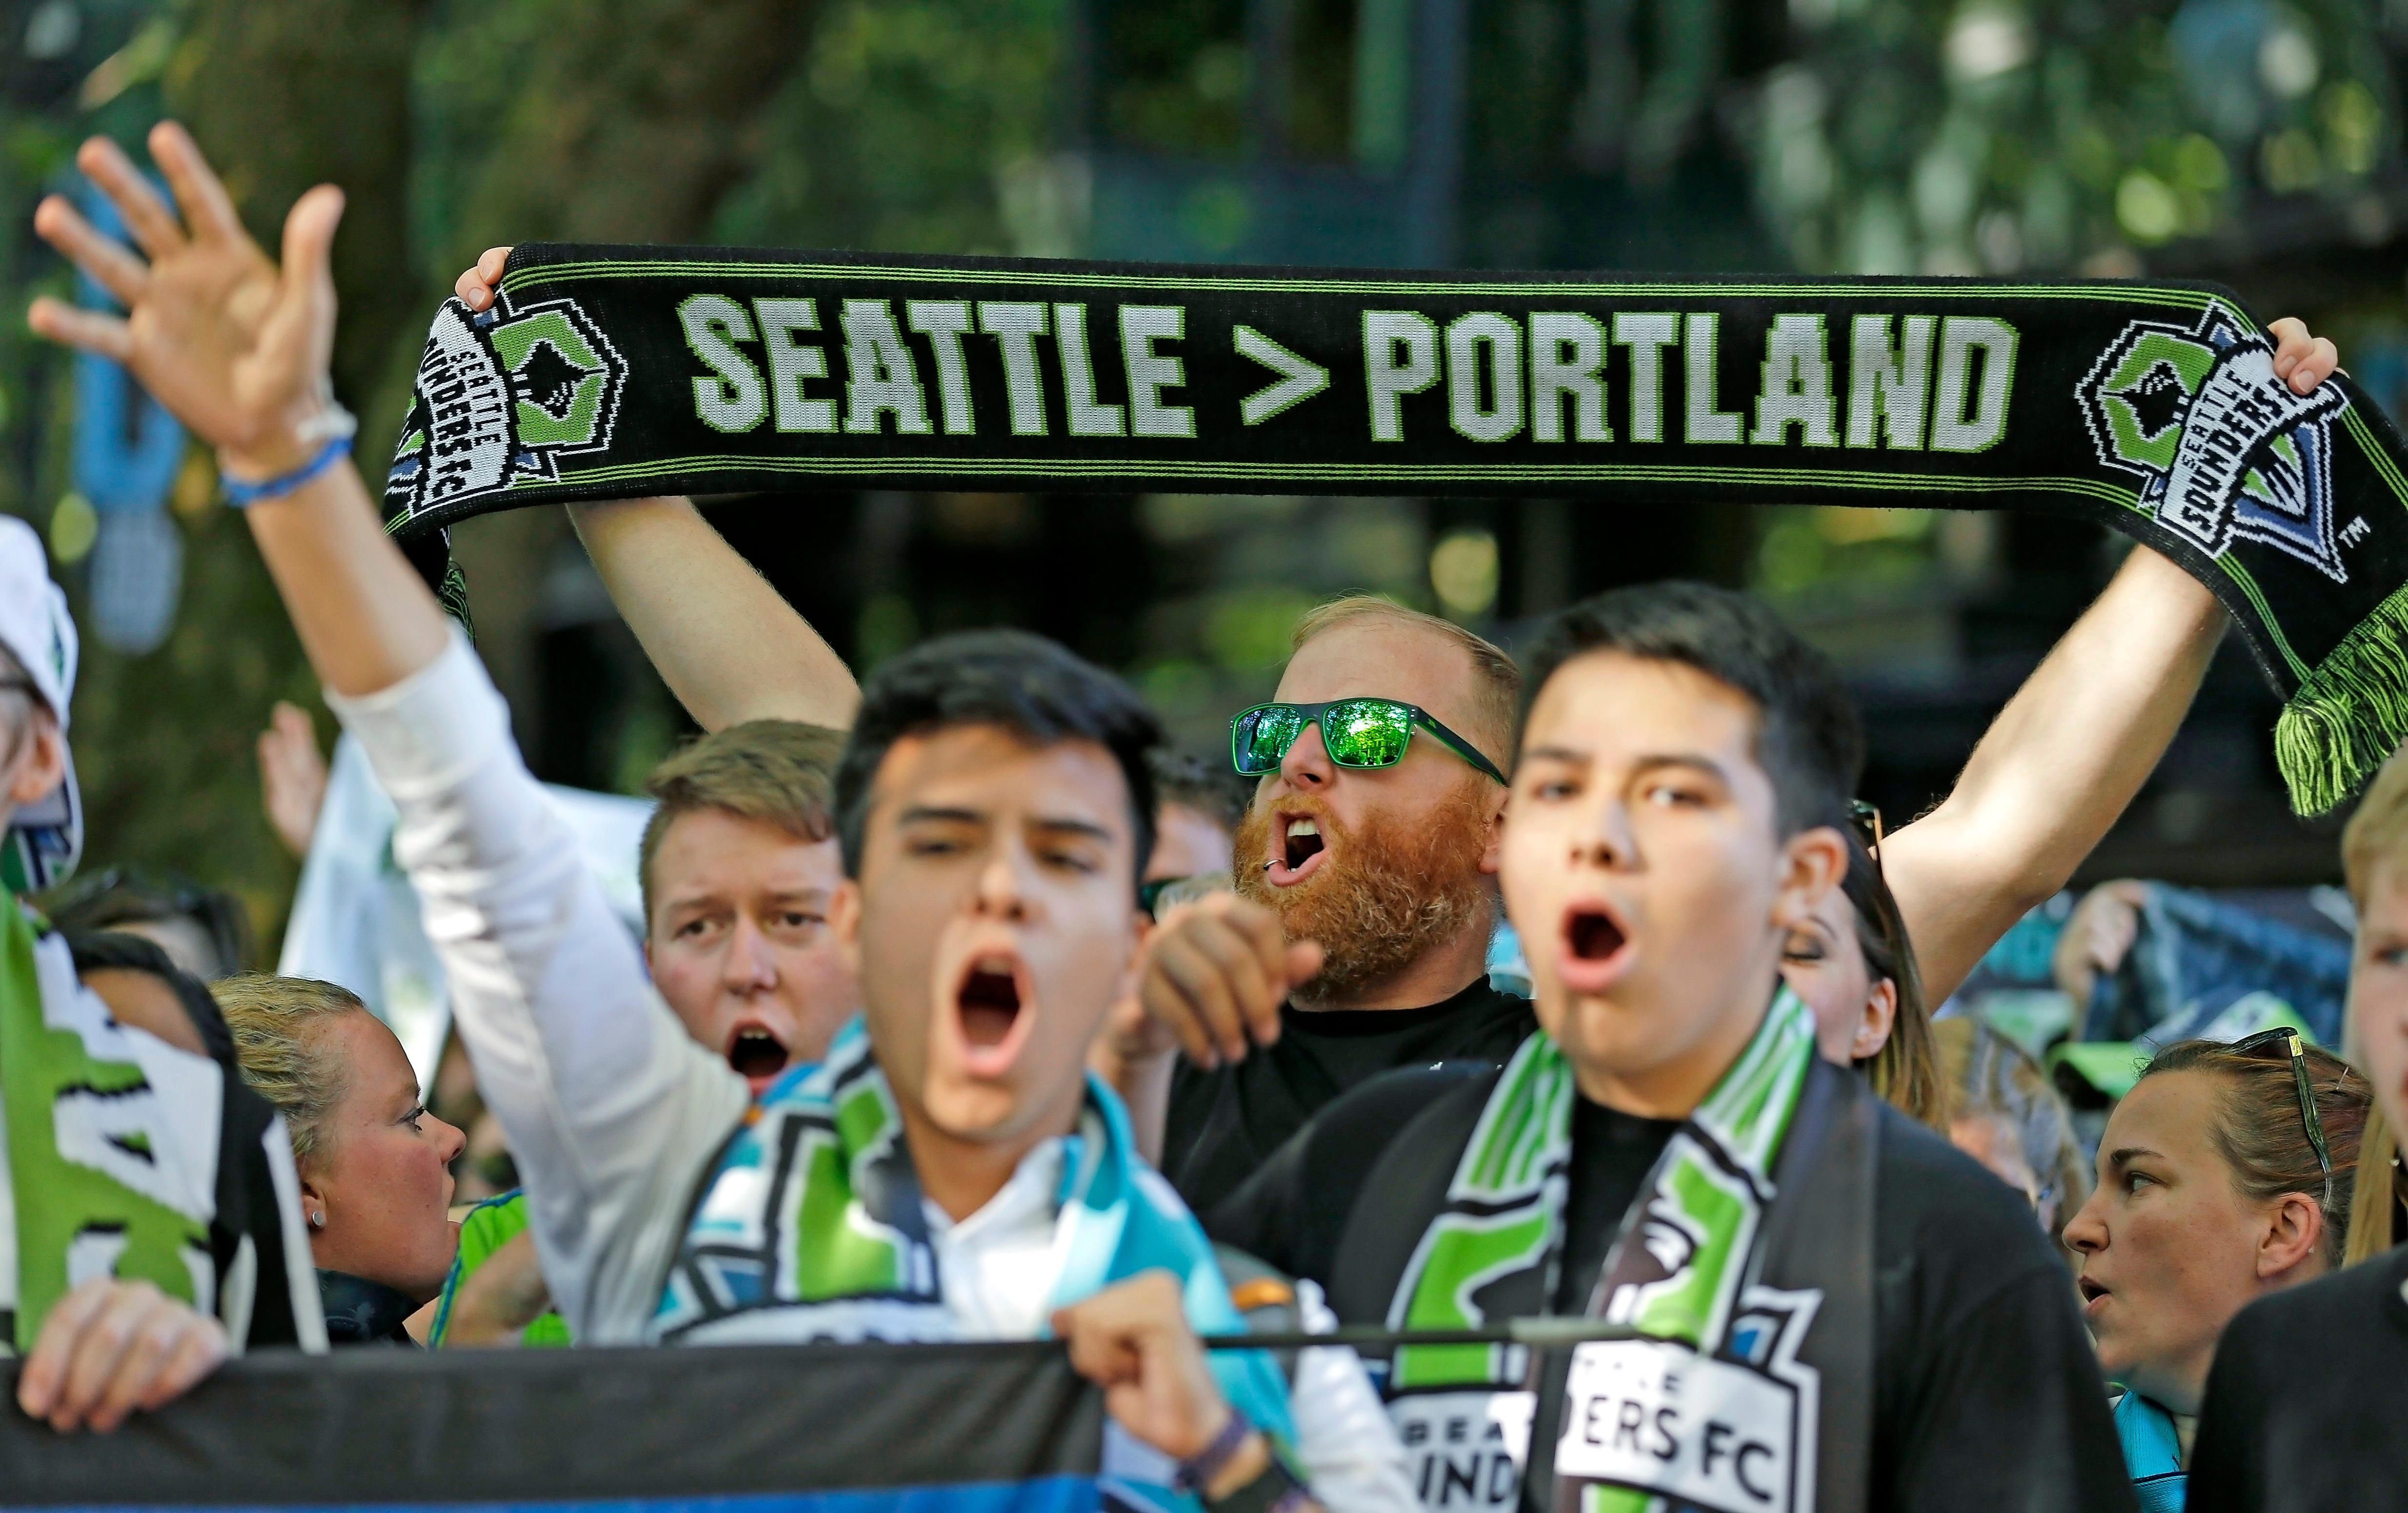 FILE - In this Aug. 27, 2017, file photo, a Seattle Sounders supporter holds up a scarf as he takes part in the traditional March to the Match before an MLS soccer match against the Portland Timbers in Seattle. The Timbers host the Sounders on Sunday in the 100th meeting between the two rivals from the Pacific Northwest. (AP Photo/Ted S. Warren, File)